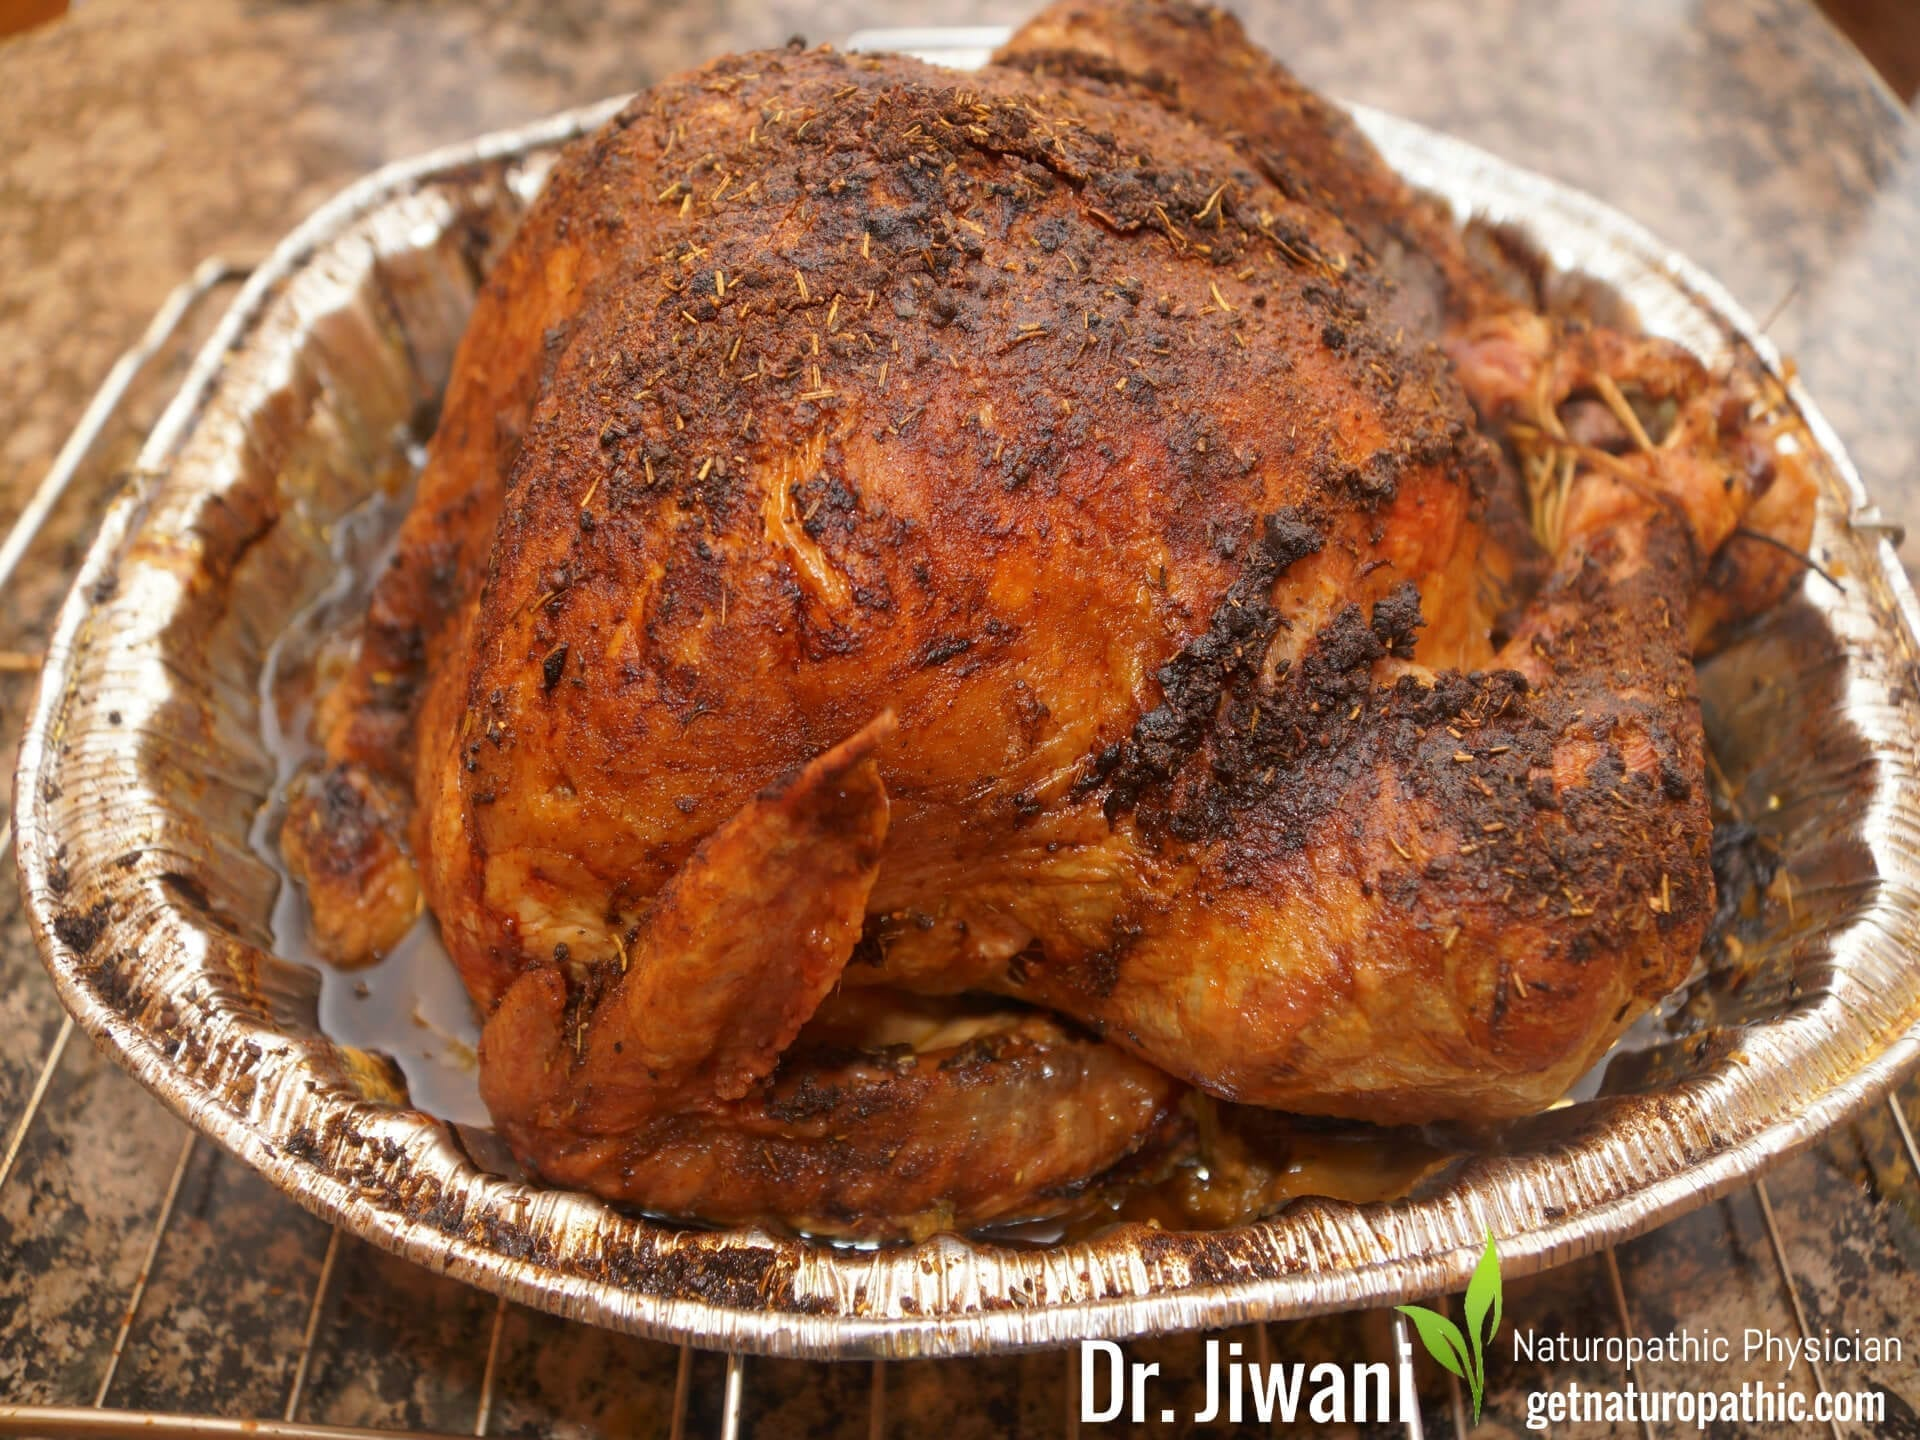 Dr. Jiwani's Roasted Turkey Recipe is Moist & Spicy while Low Carb, Gluten-Free, Egg-Free, Dairy-Free, Soy-Free, Corn-Free, Ideal For Vegan, Paleo, Keto, Diabetic & Candida Diets | Dr. Jiwani's Naturopathic Nuggets Blog